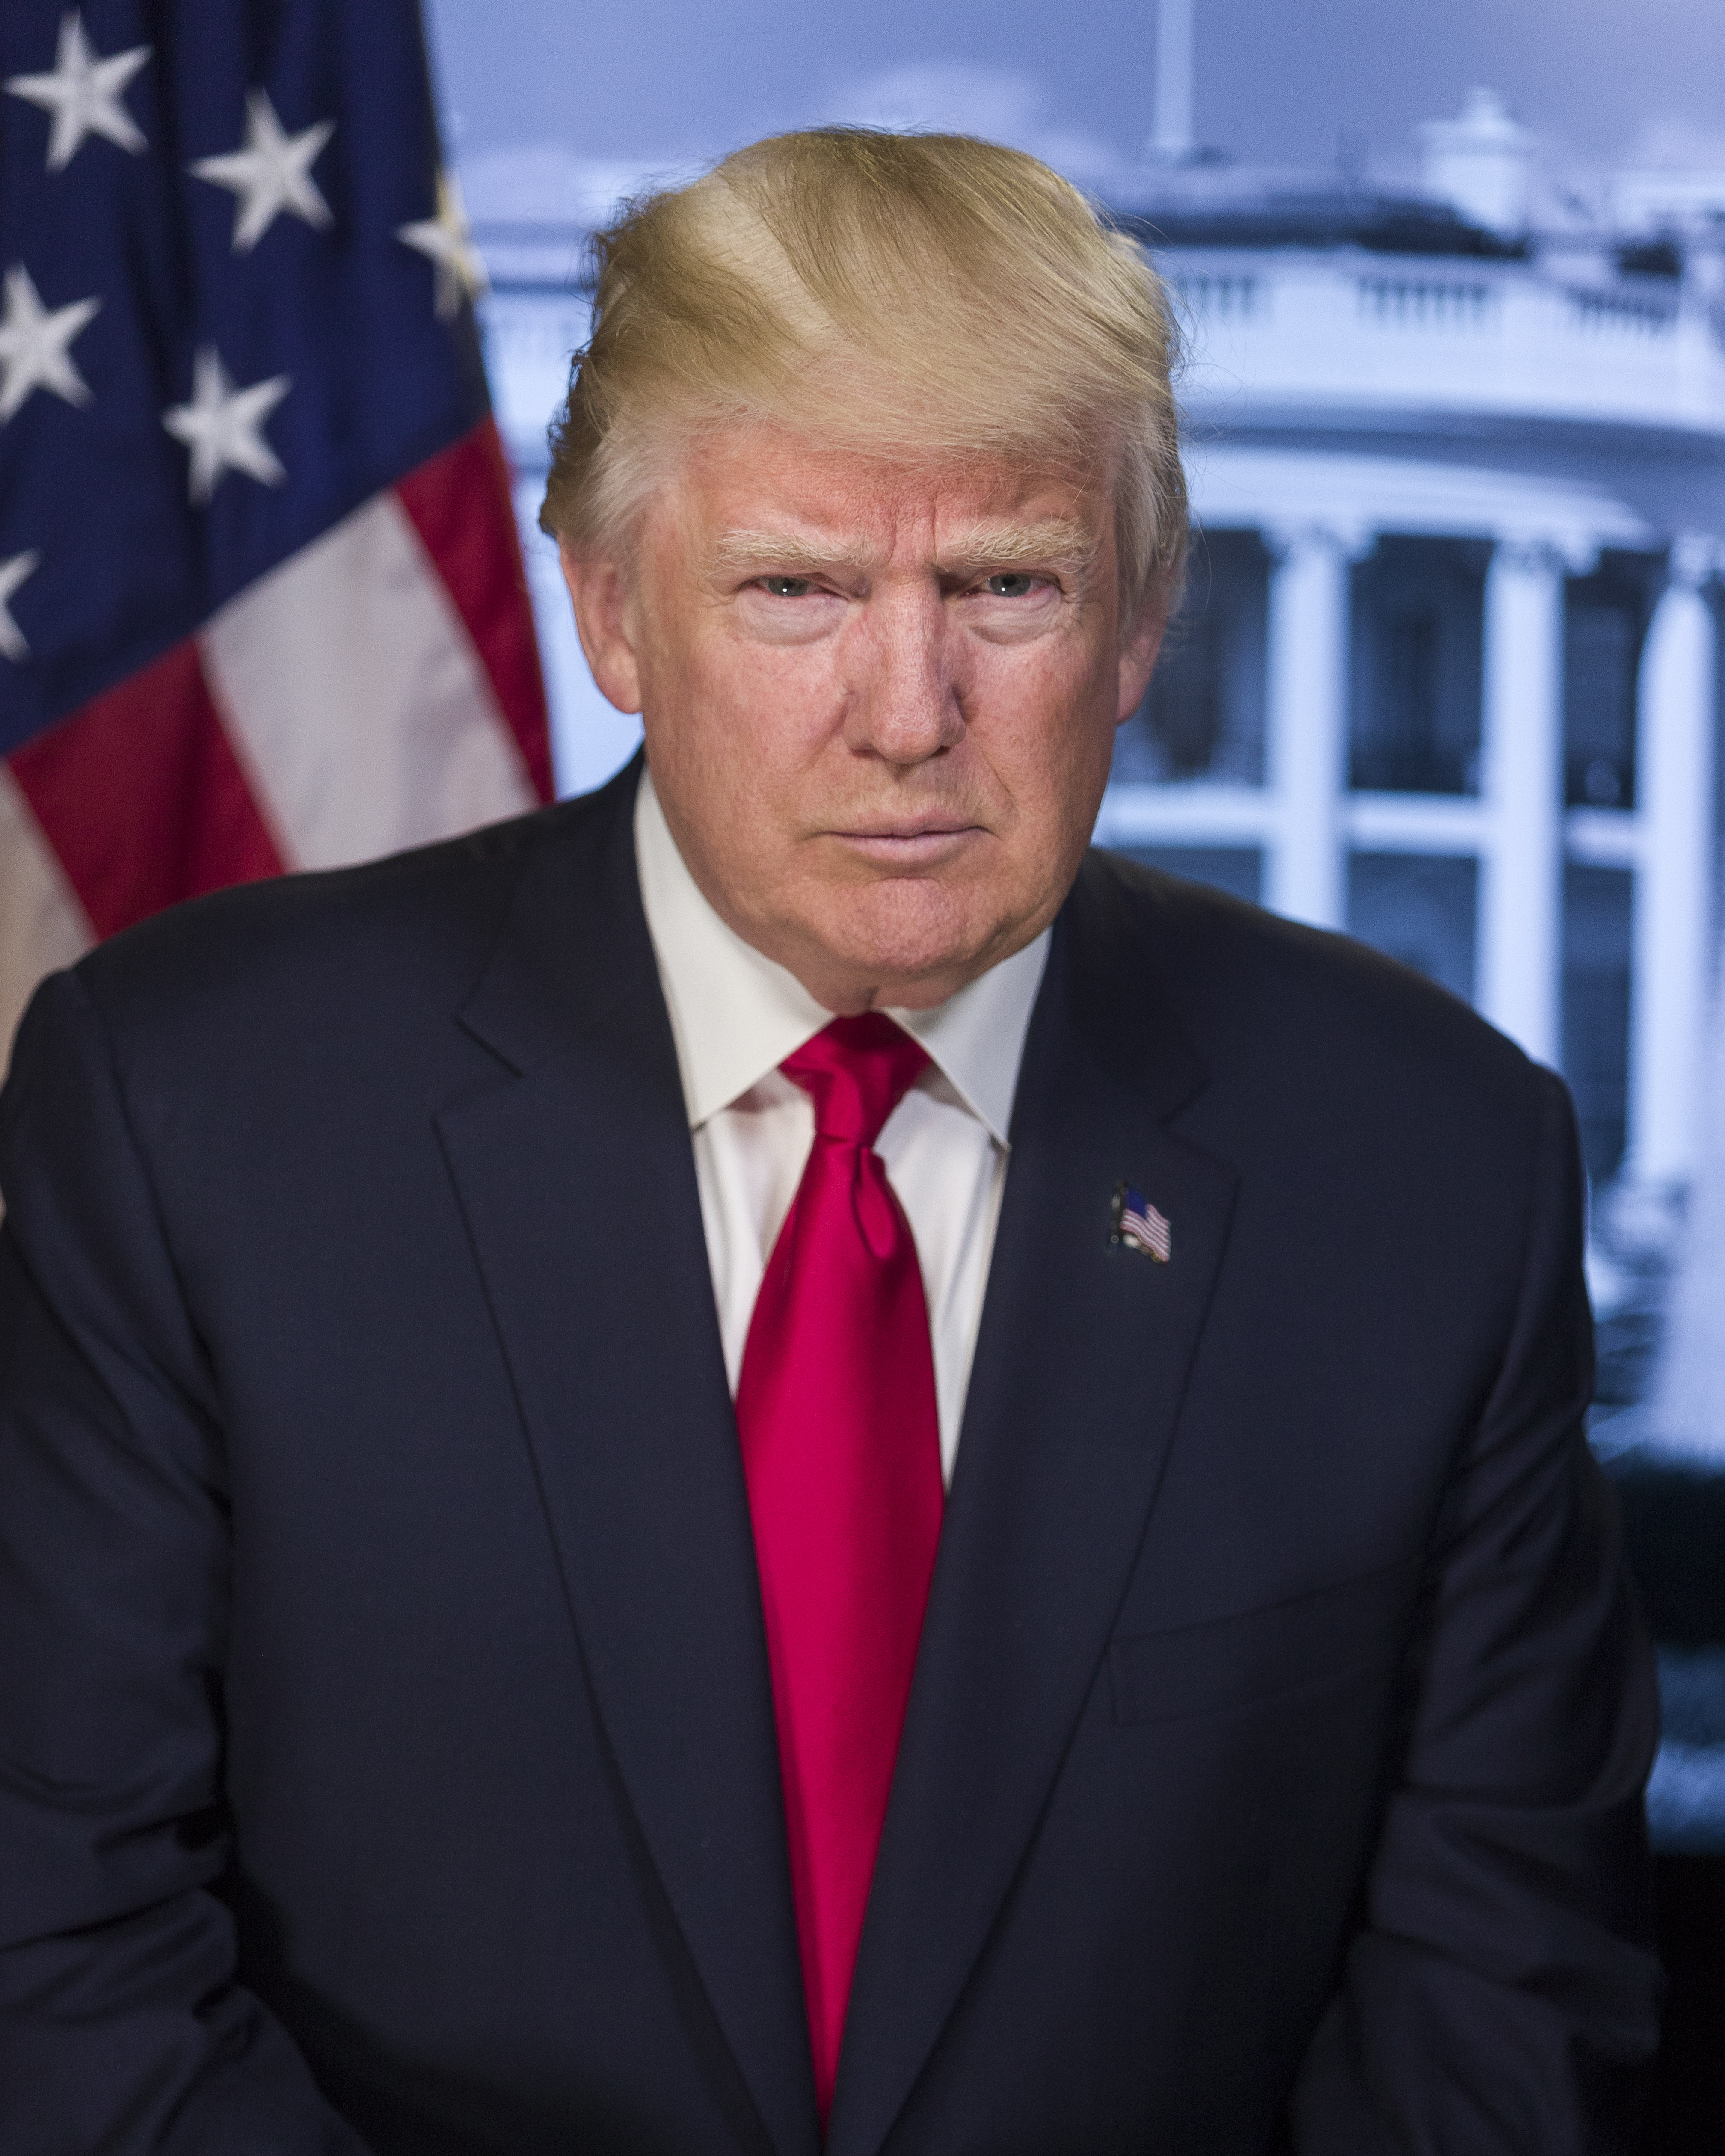 donaldtrump-officialpresidentialphoto